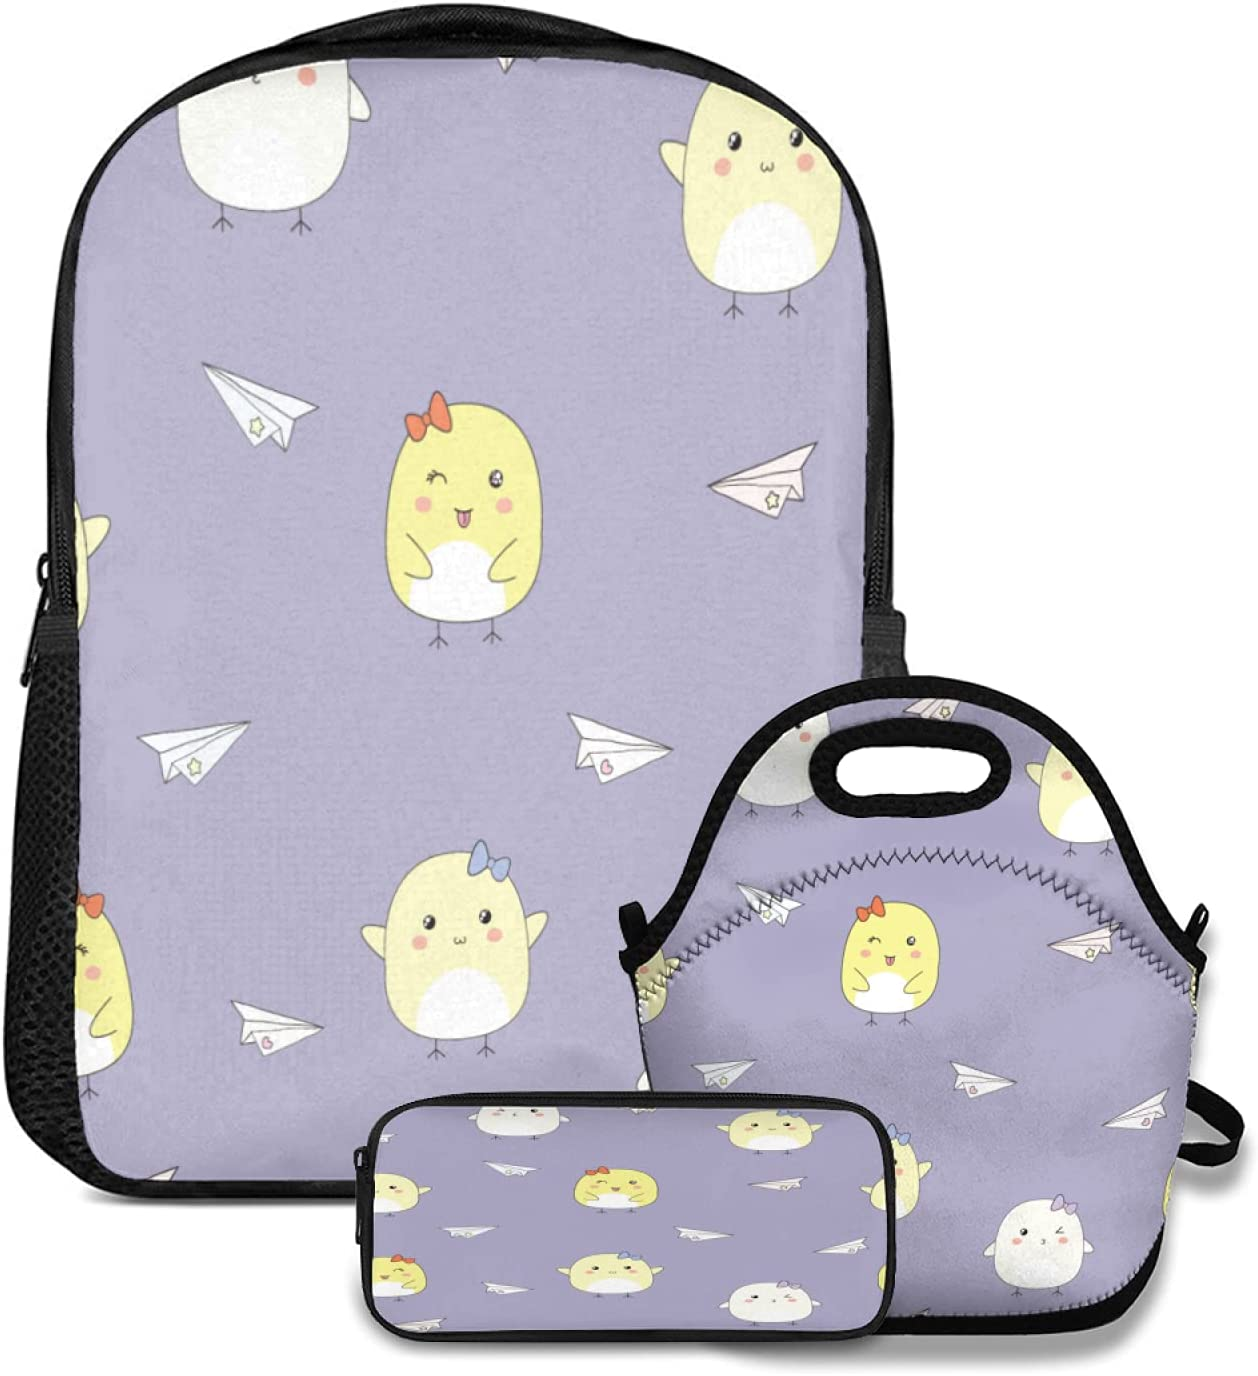 Backpack Sale item SEAL limited product Lunch tote Bag and Pencil Case Seamless pattern 3pc set